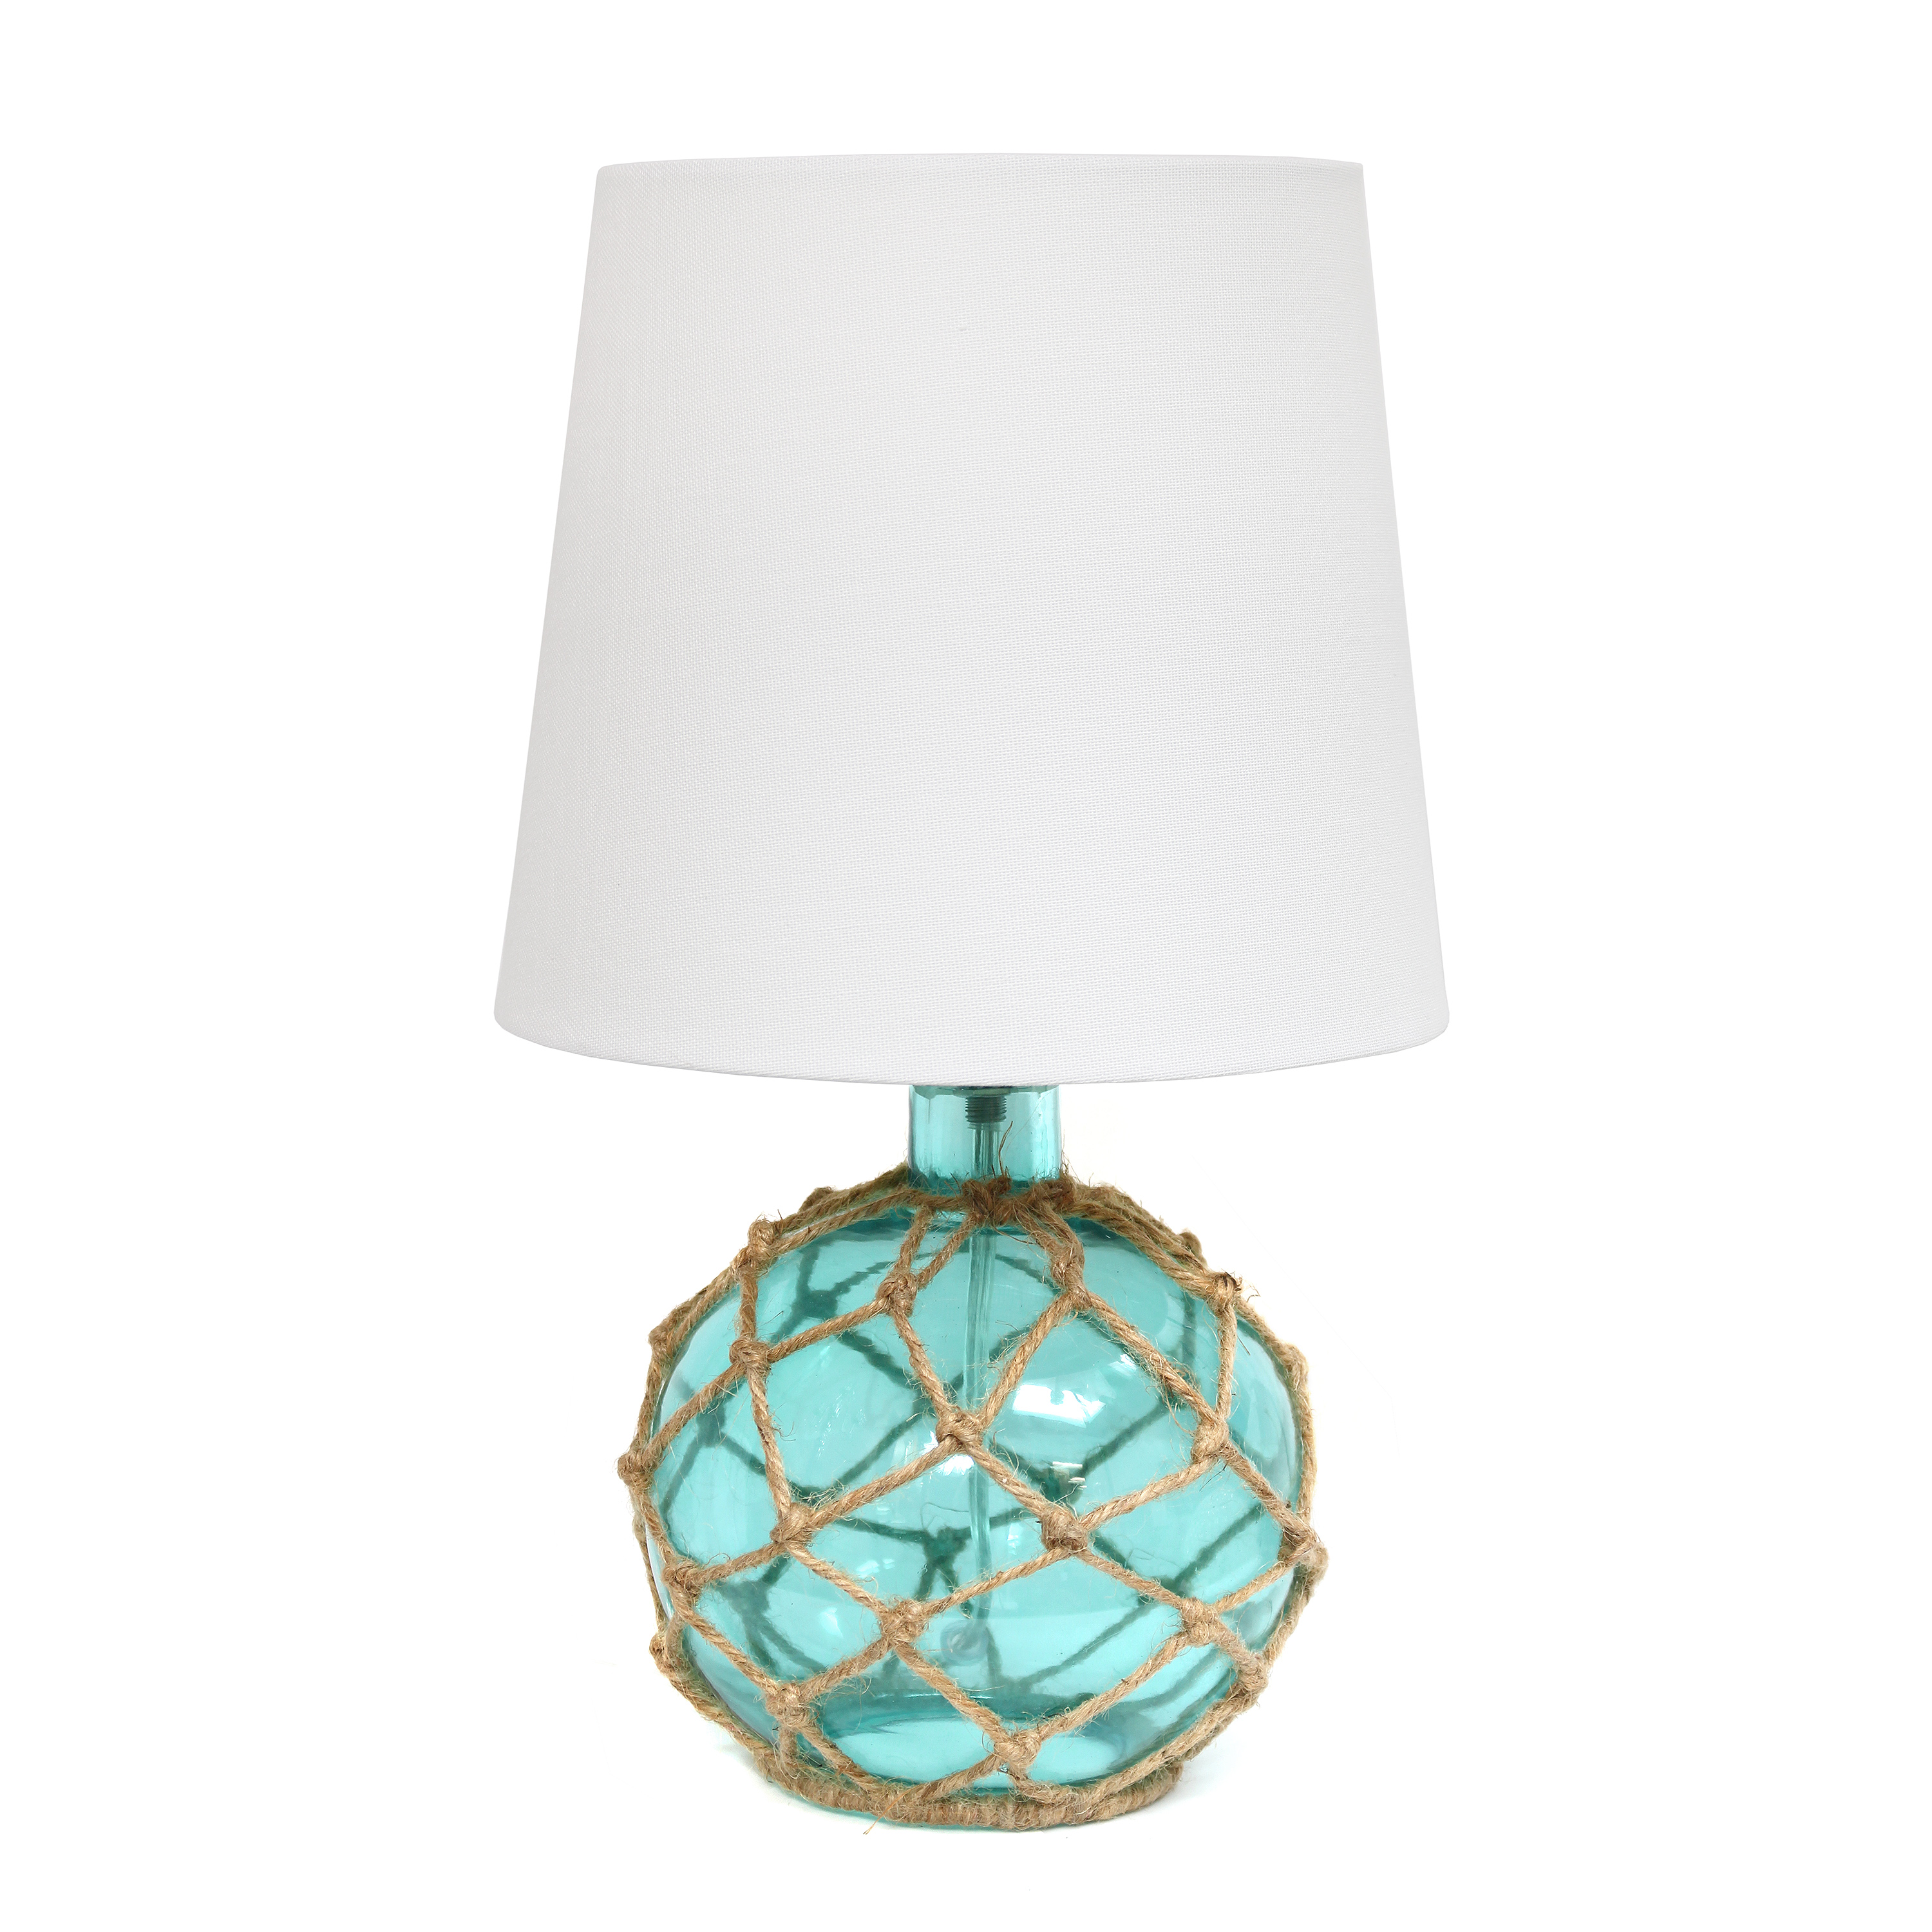 Elegant Designs Buoy Rope Nautical Netted Coastal Ocean Sea Glass Table Lamp with White Fabric Shade, Aqua